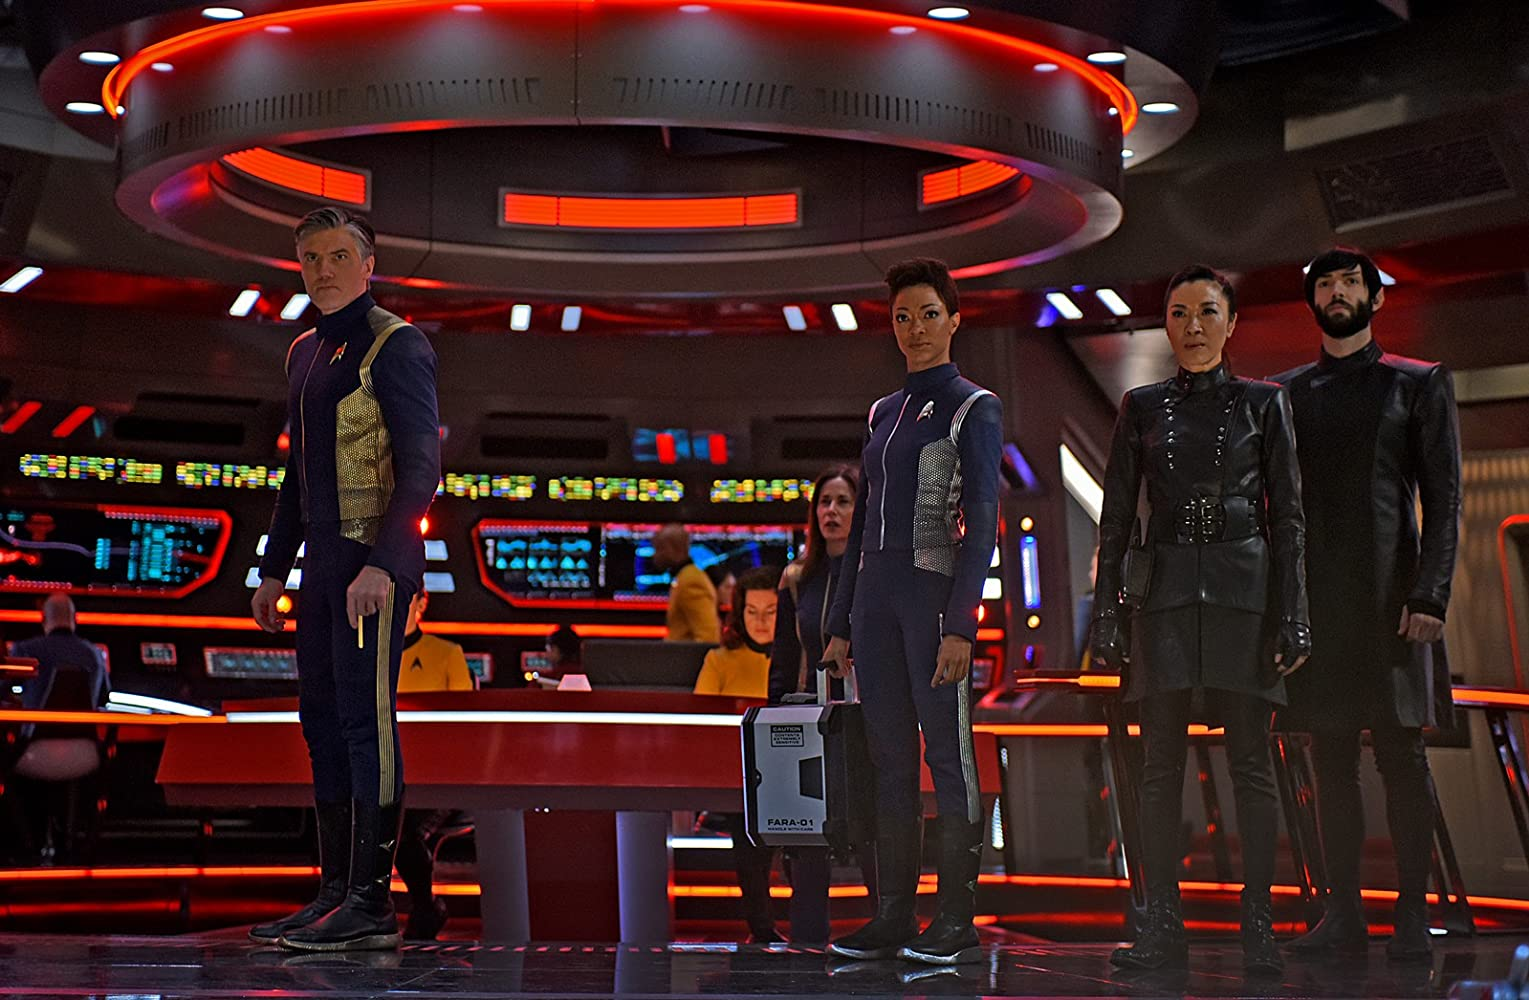 Michelle Yeoh, Jayne Brook, Anson Mount, Ethan Peck, and Sonequa Martin-Green in Star Trek: Discovery (2017)